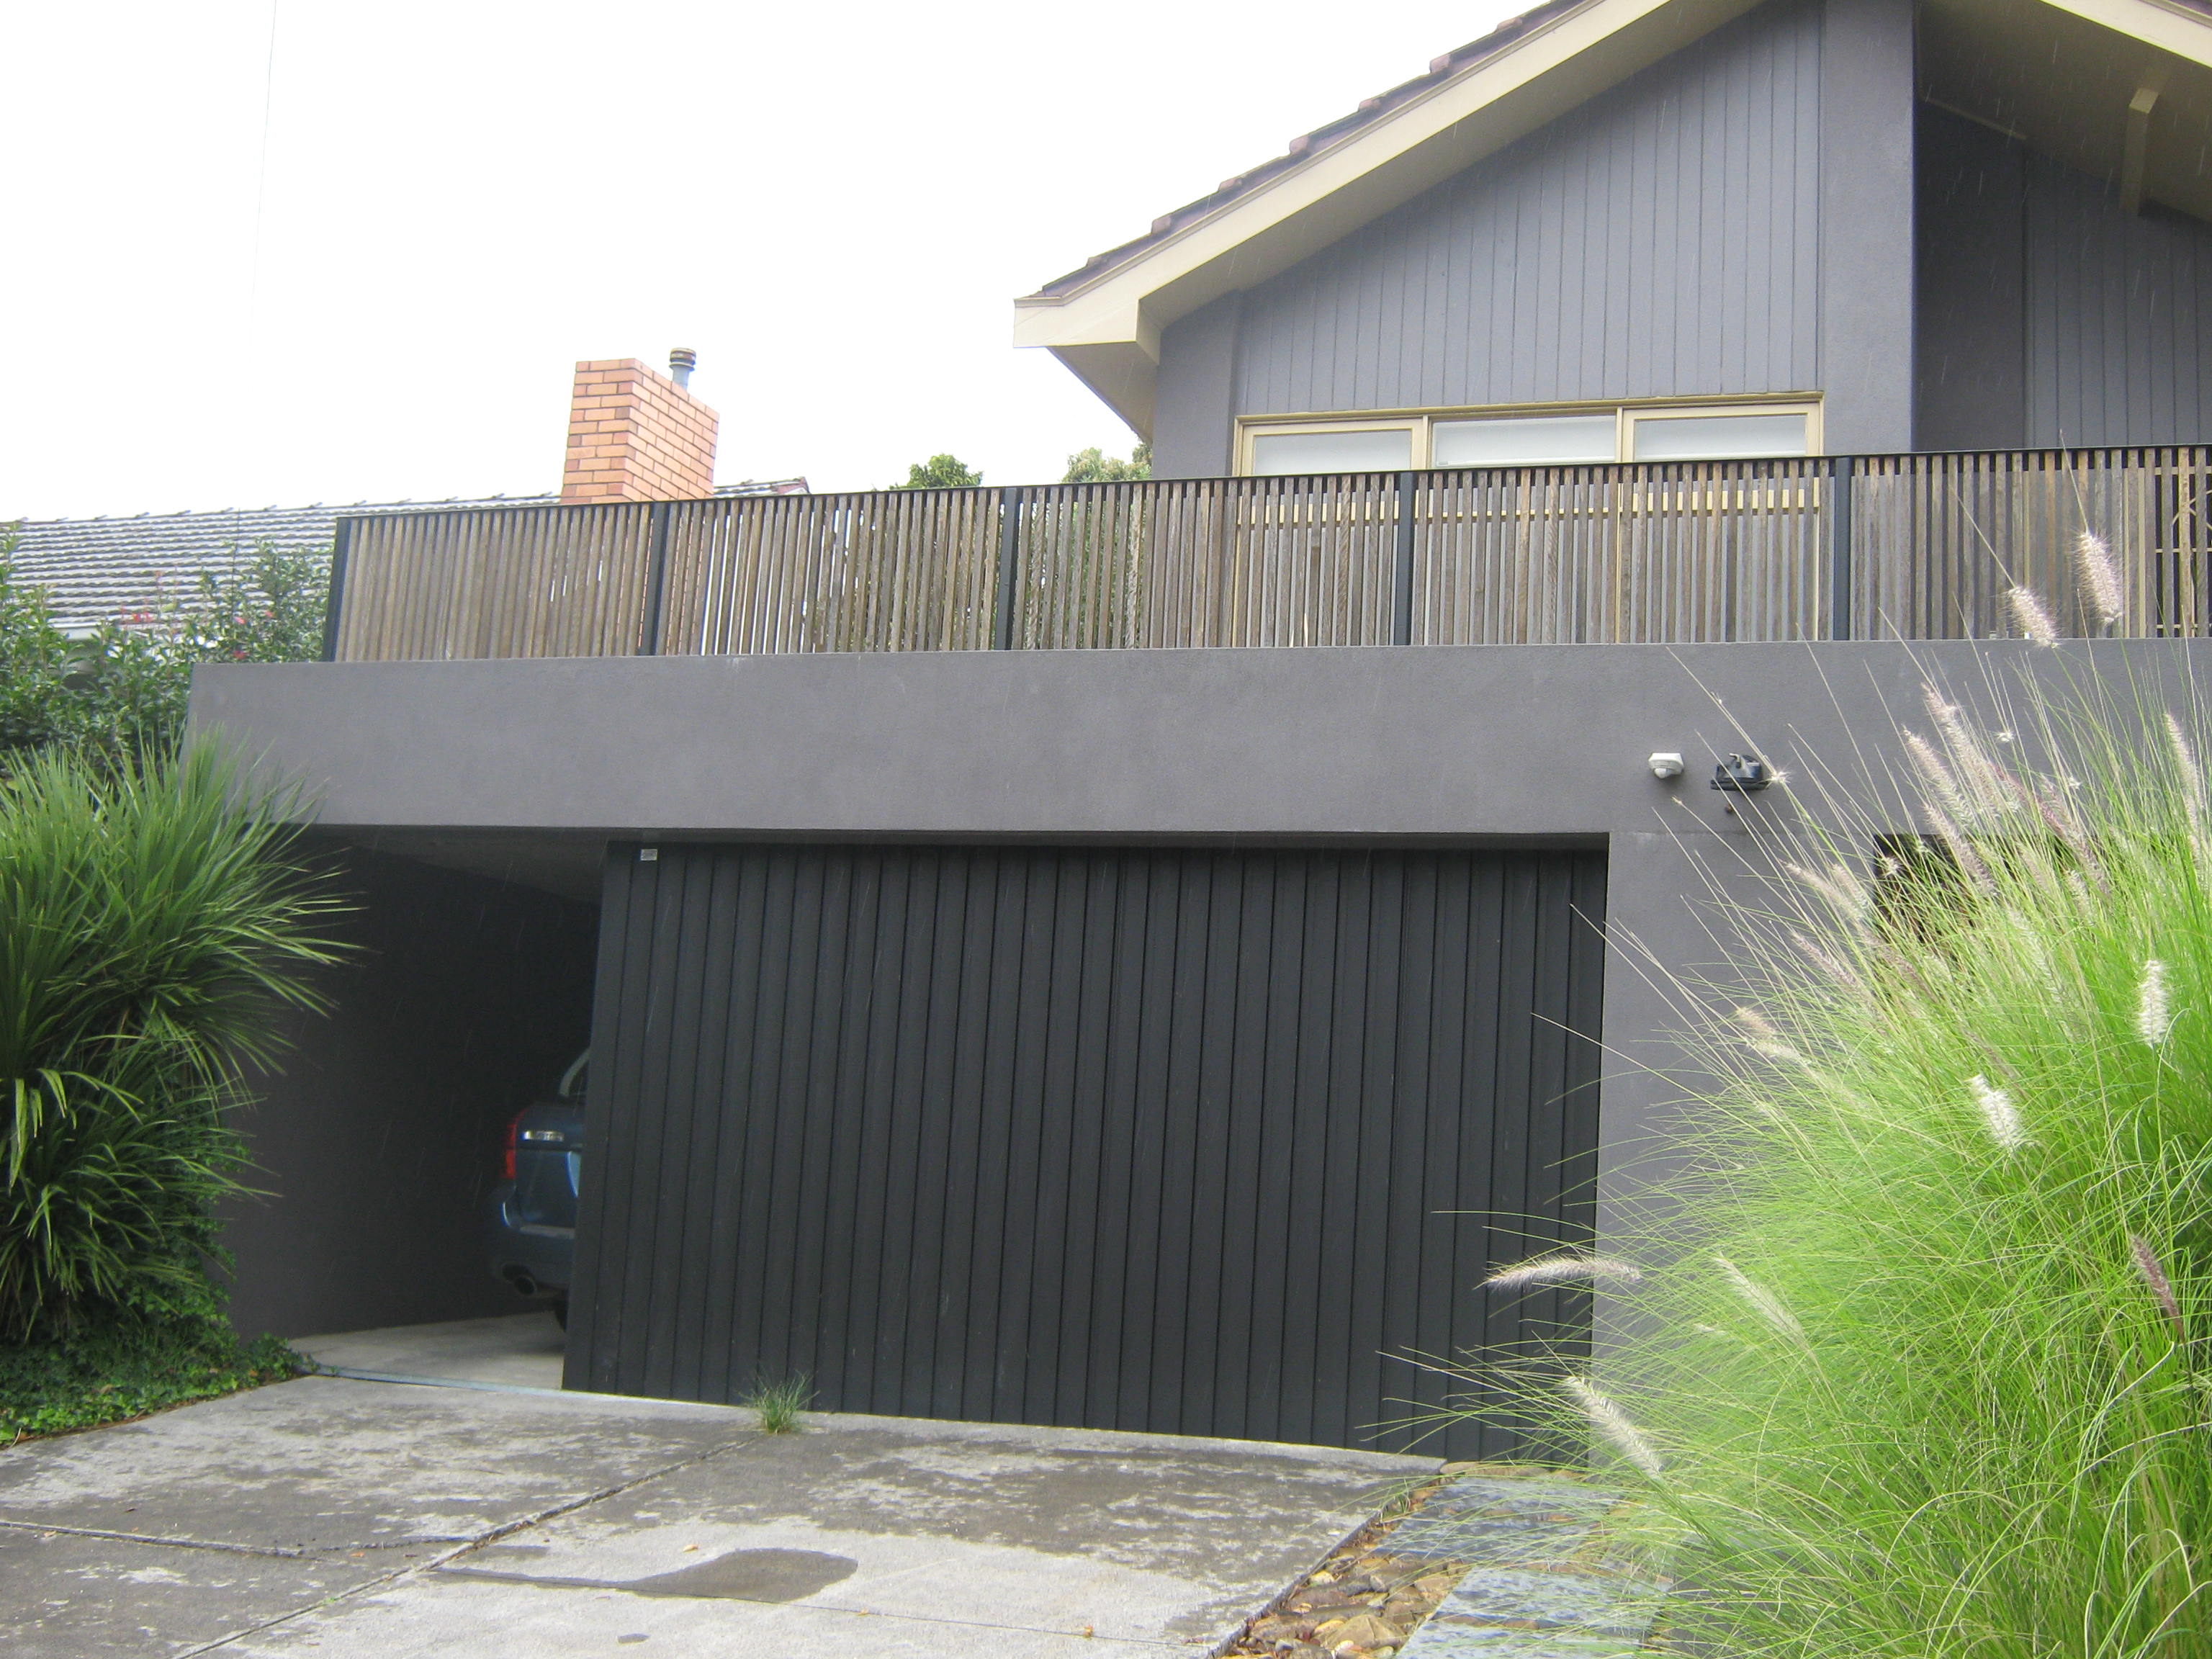 Under House - Side Roll Garage Roller Doors & Under House u2013 Garage Roller Camco and Tilt Doors Sydney and Melbourne